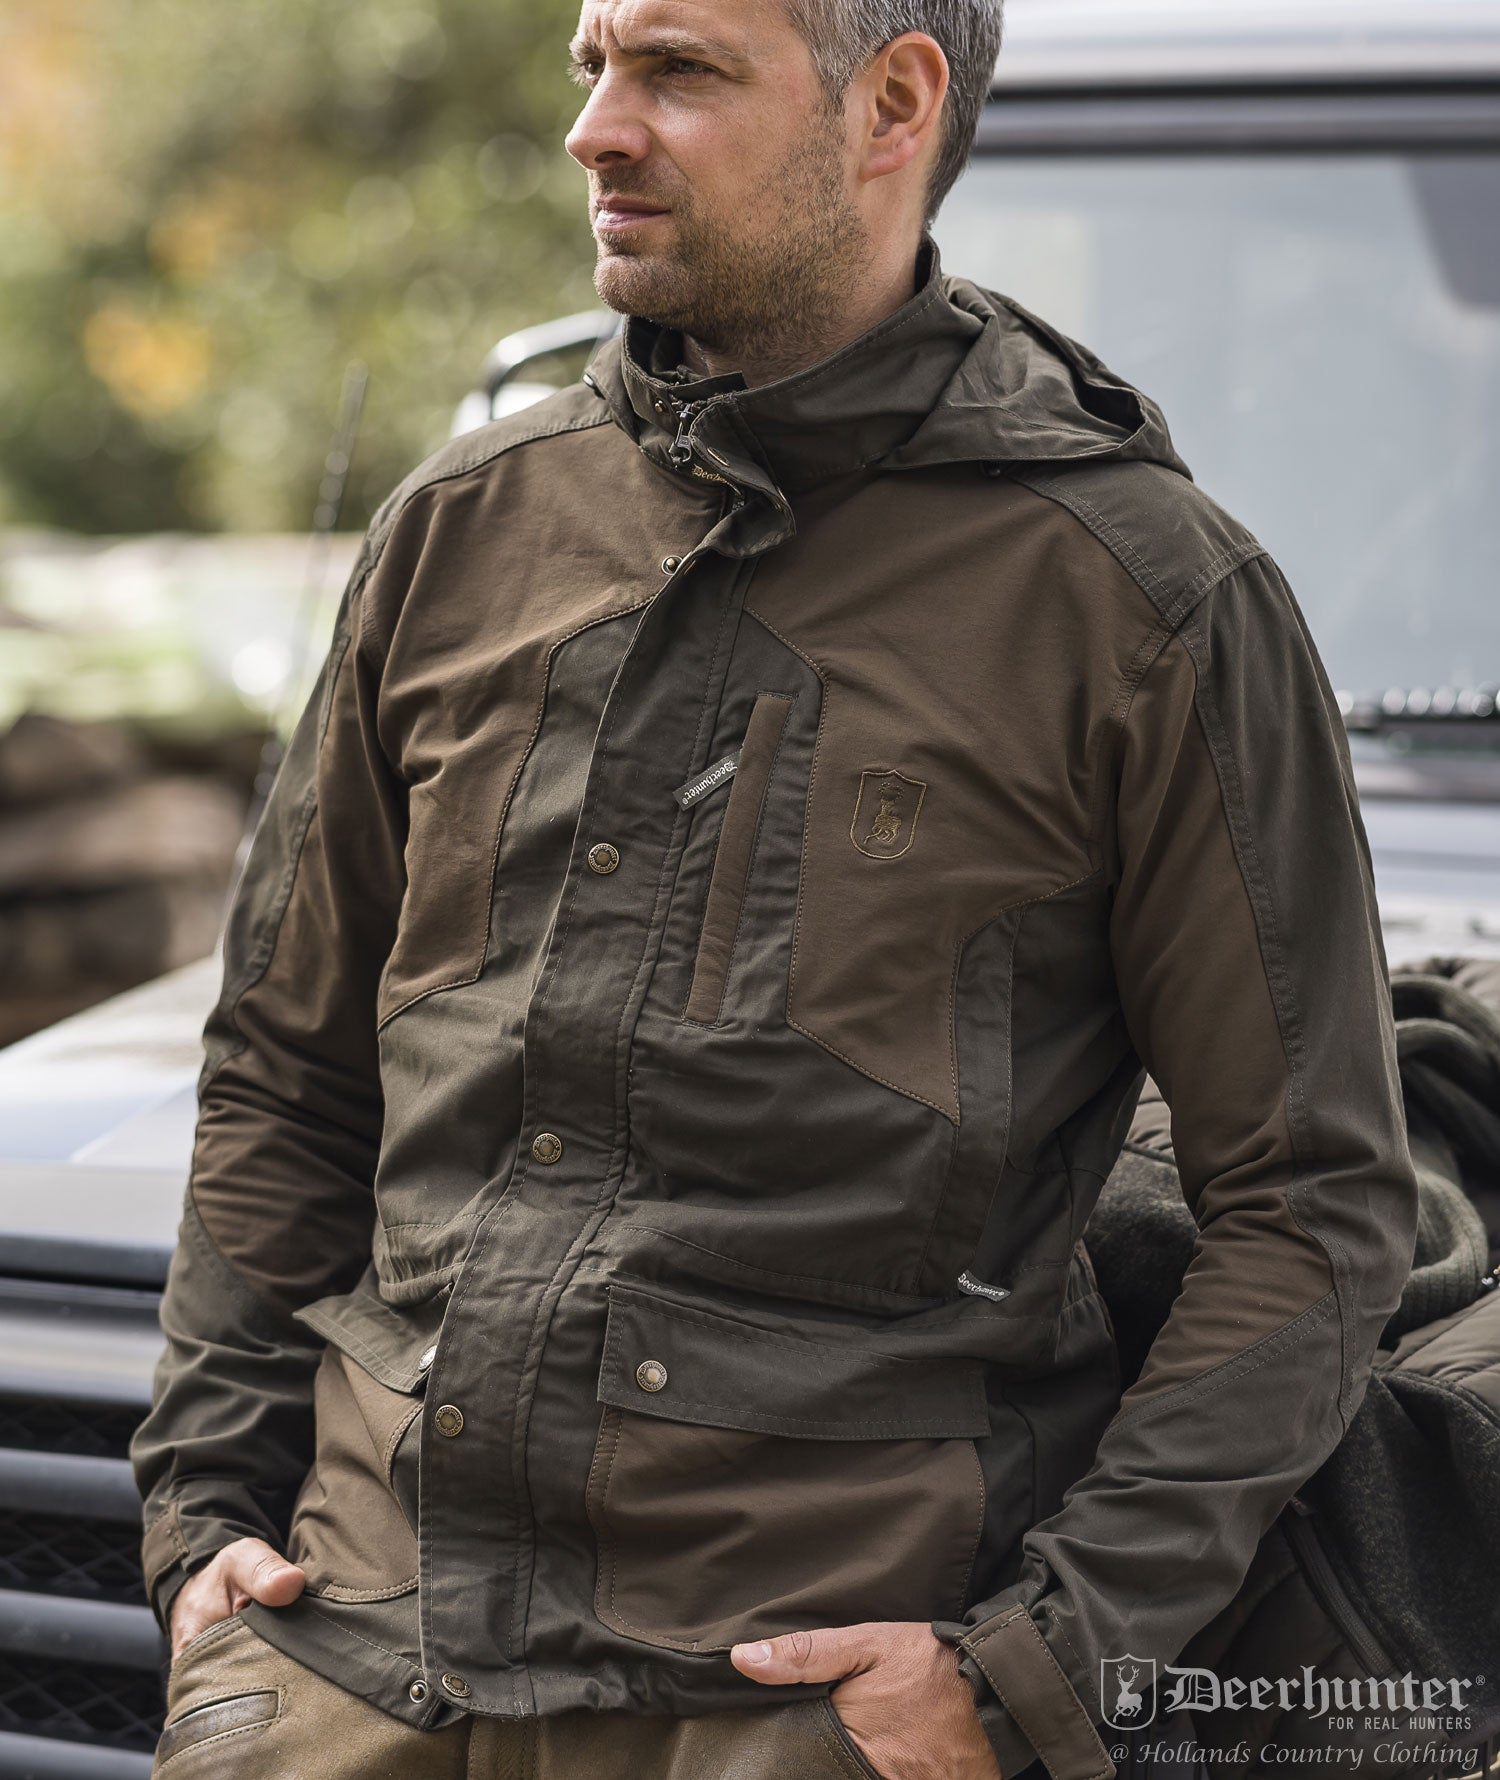 Lightweight, but robust with built in stretch, the Strike jacket by Deerhunter is ideal for country leisure wear